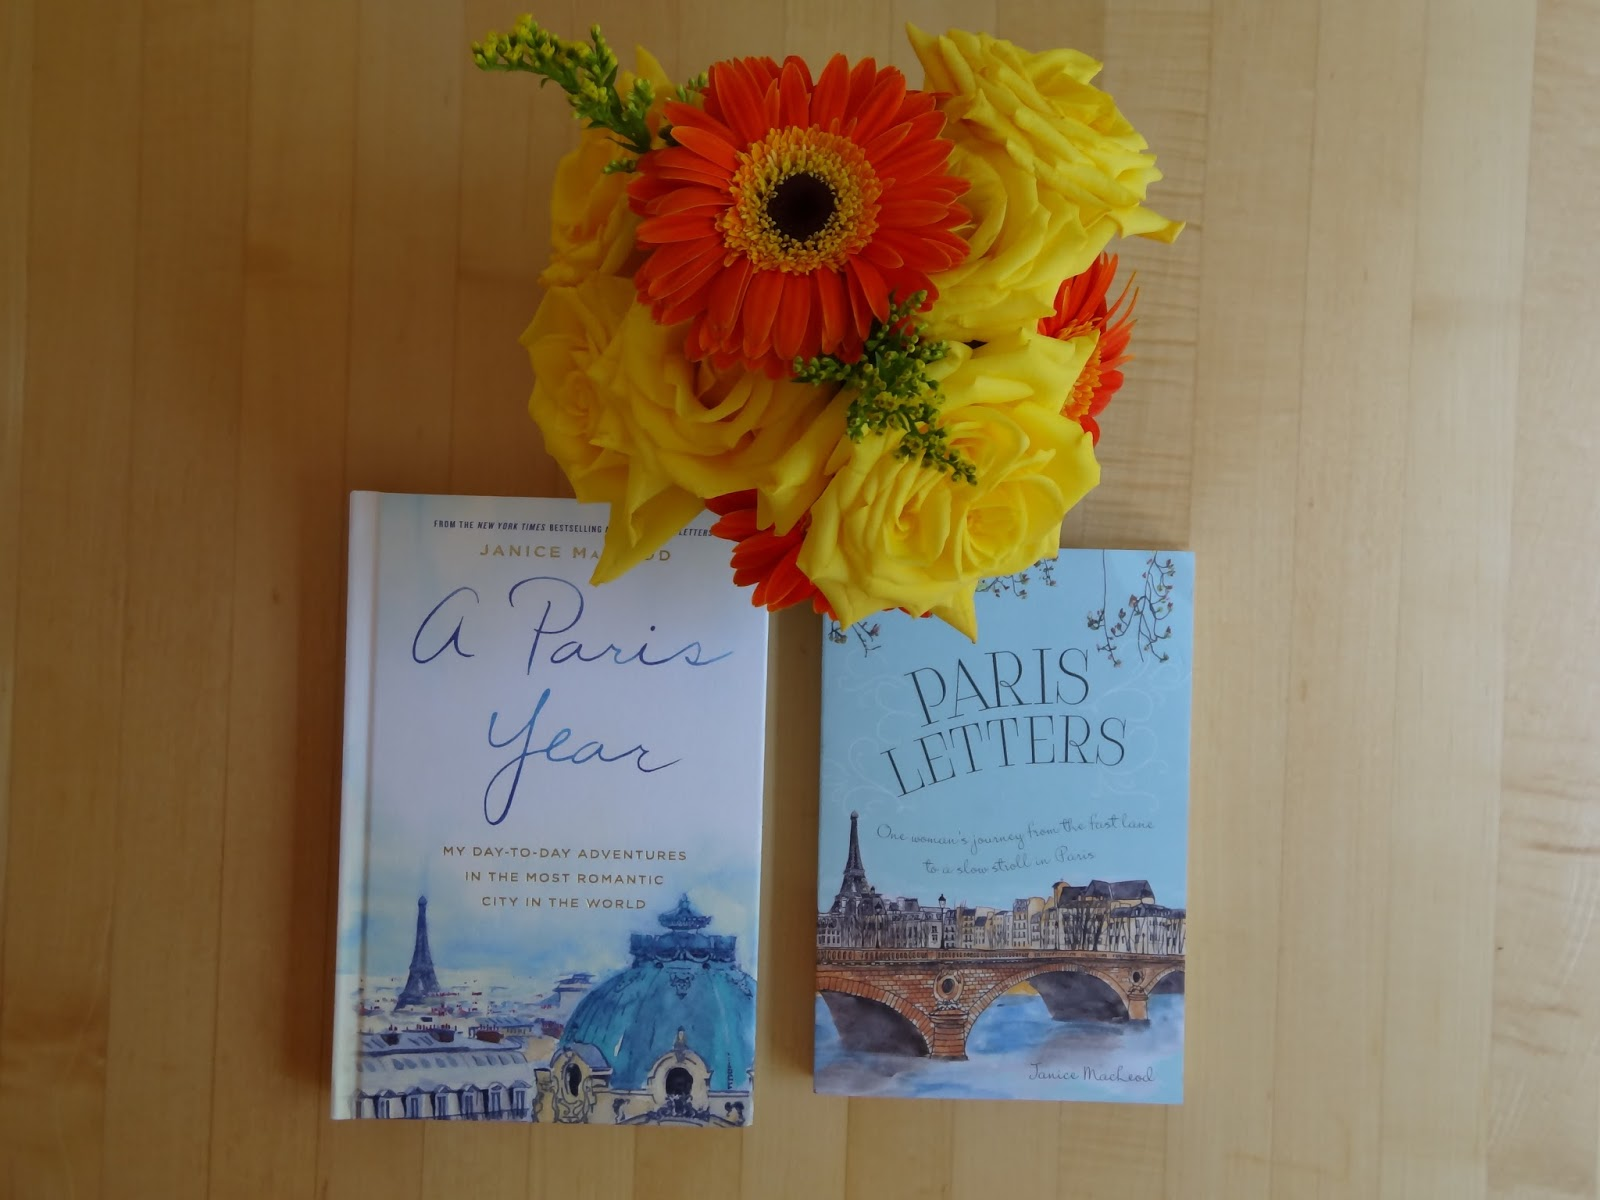 The sketchy reader paris letters and a paris year paris letters is her first book so ill review it first spiritdancerdesigns Images